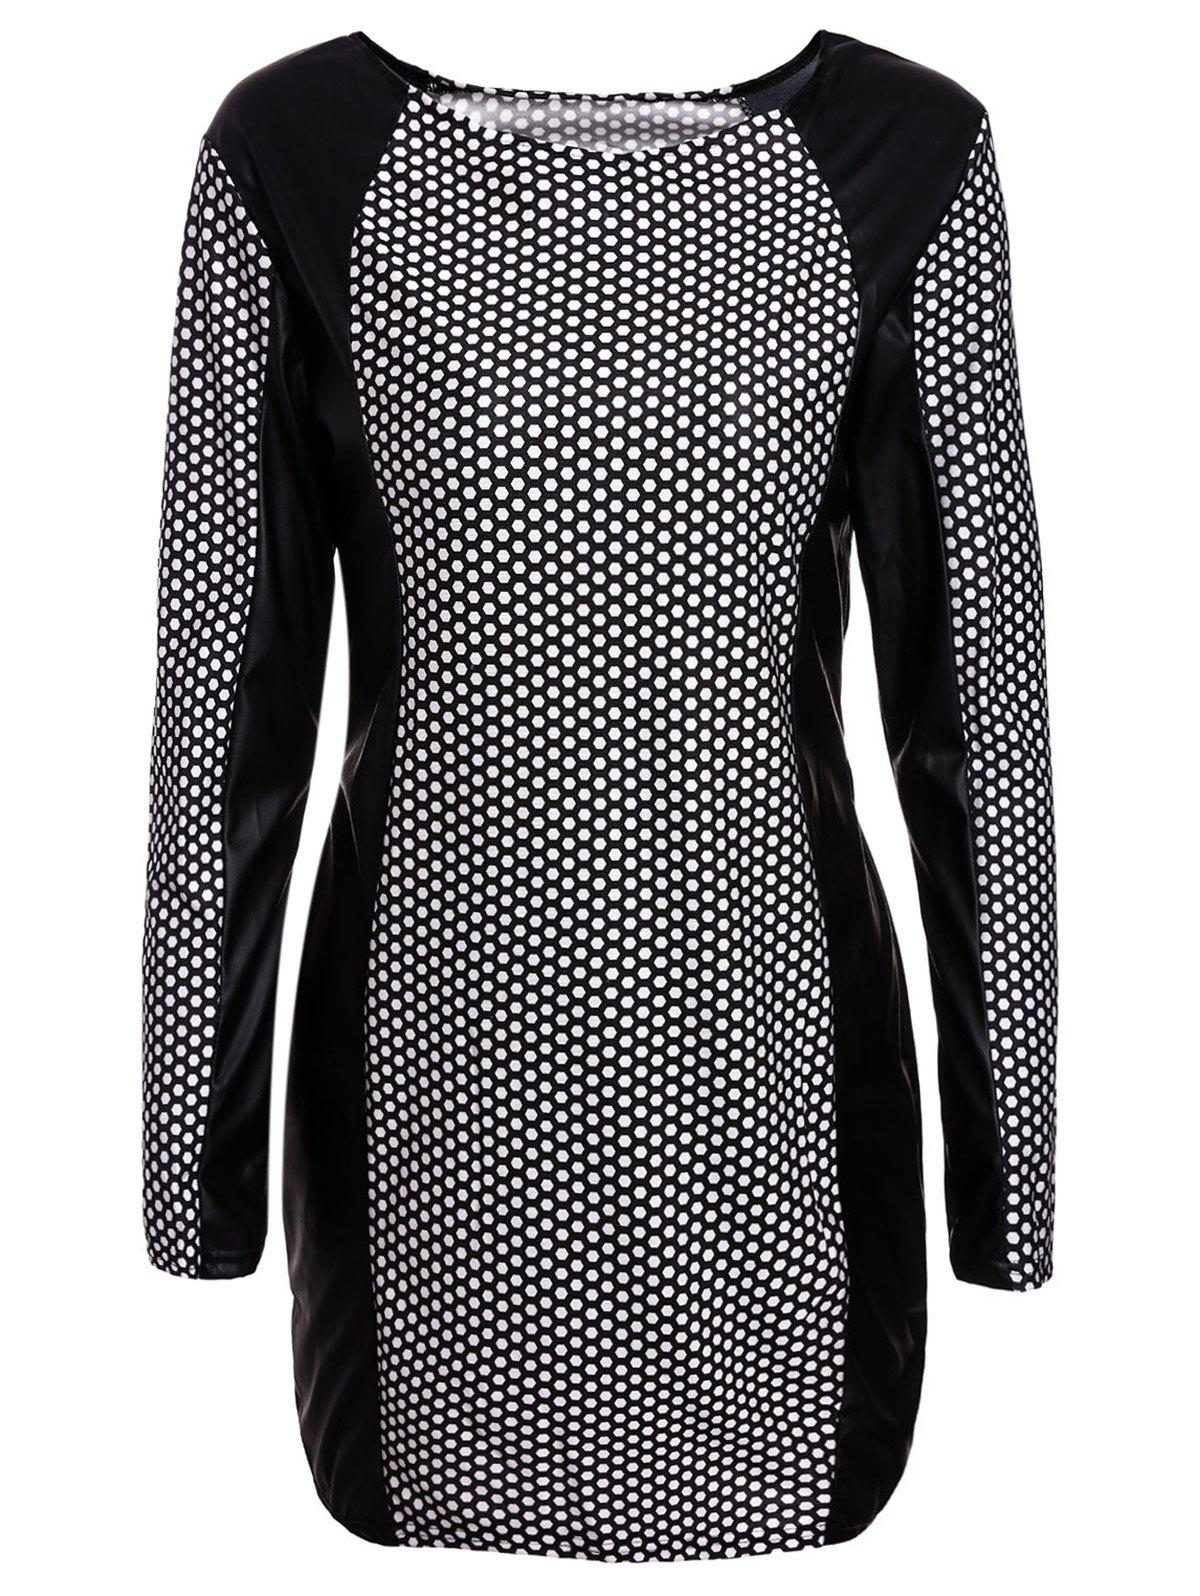 Sexy Jewel Neck PU Leather Splicing Long Sleeve Printed Dress For Women - WHITE/BLACK L